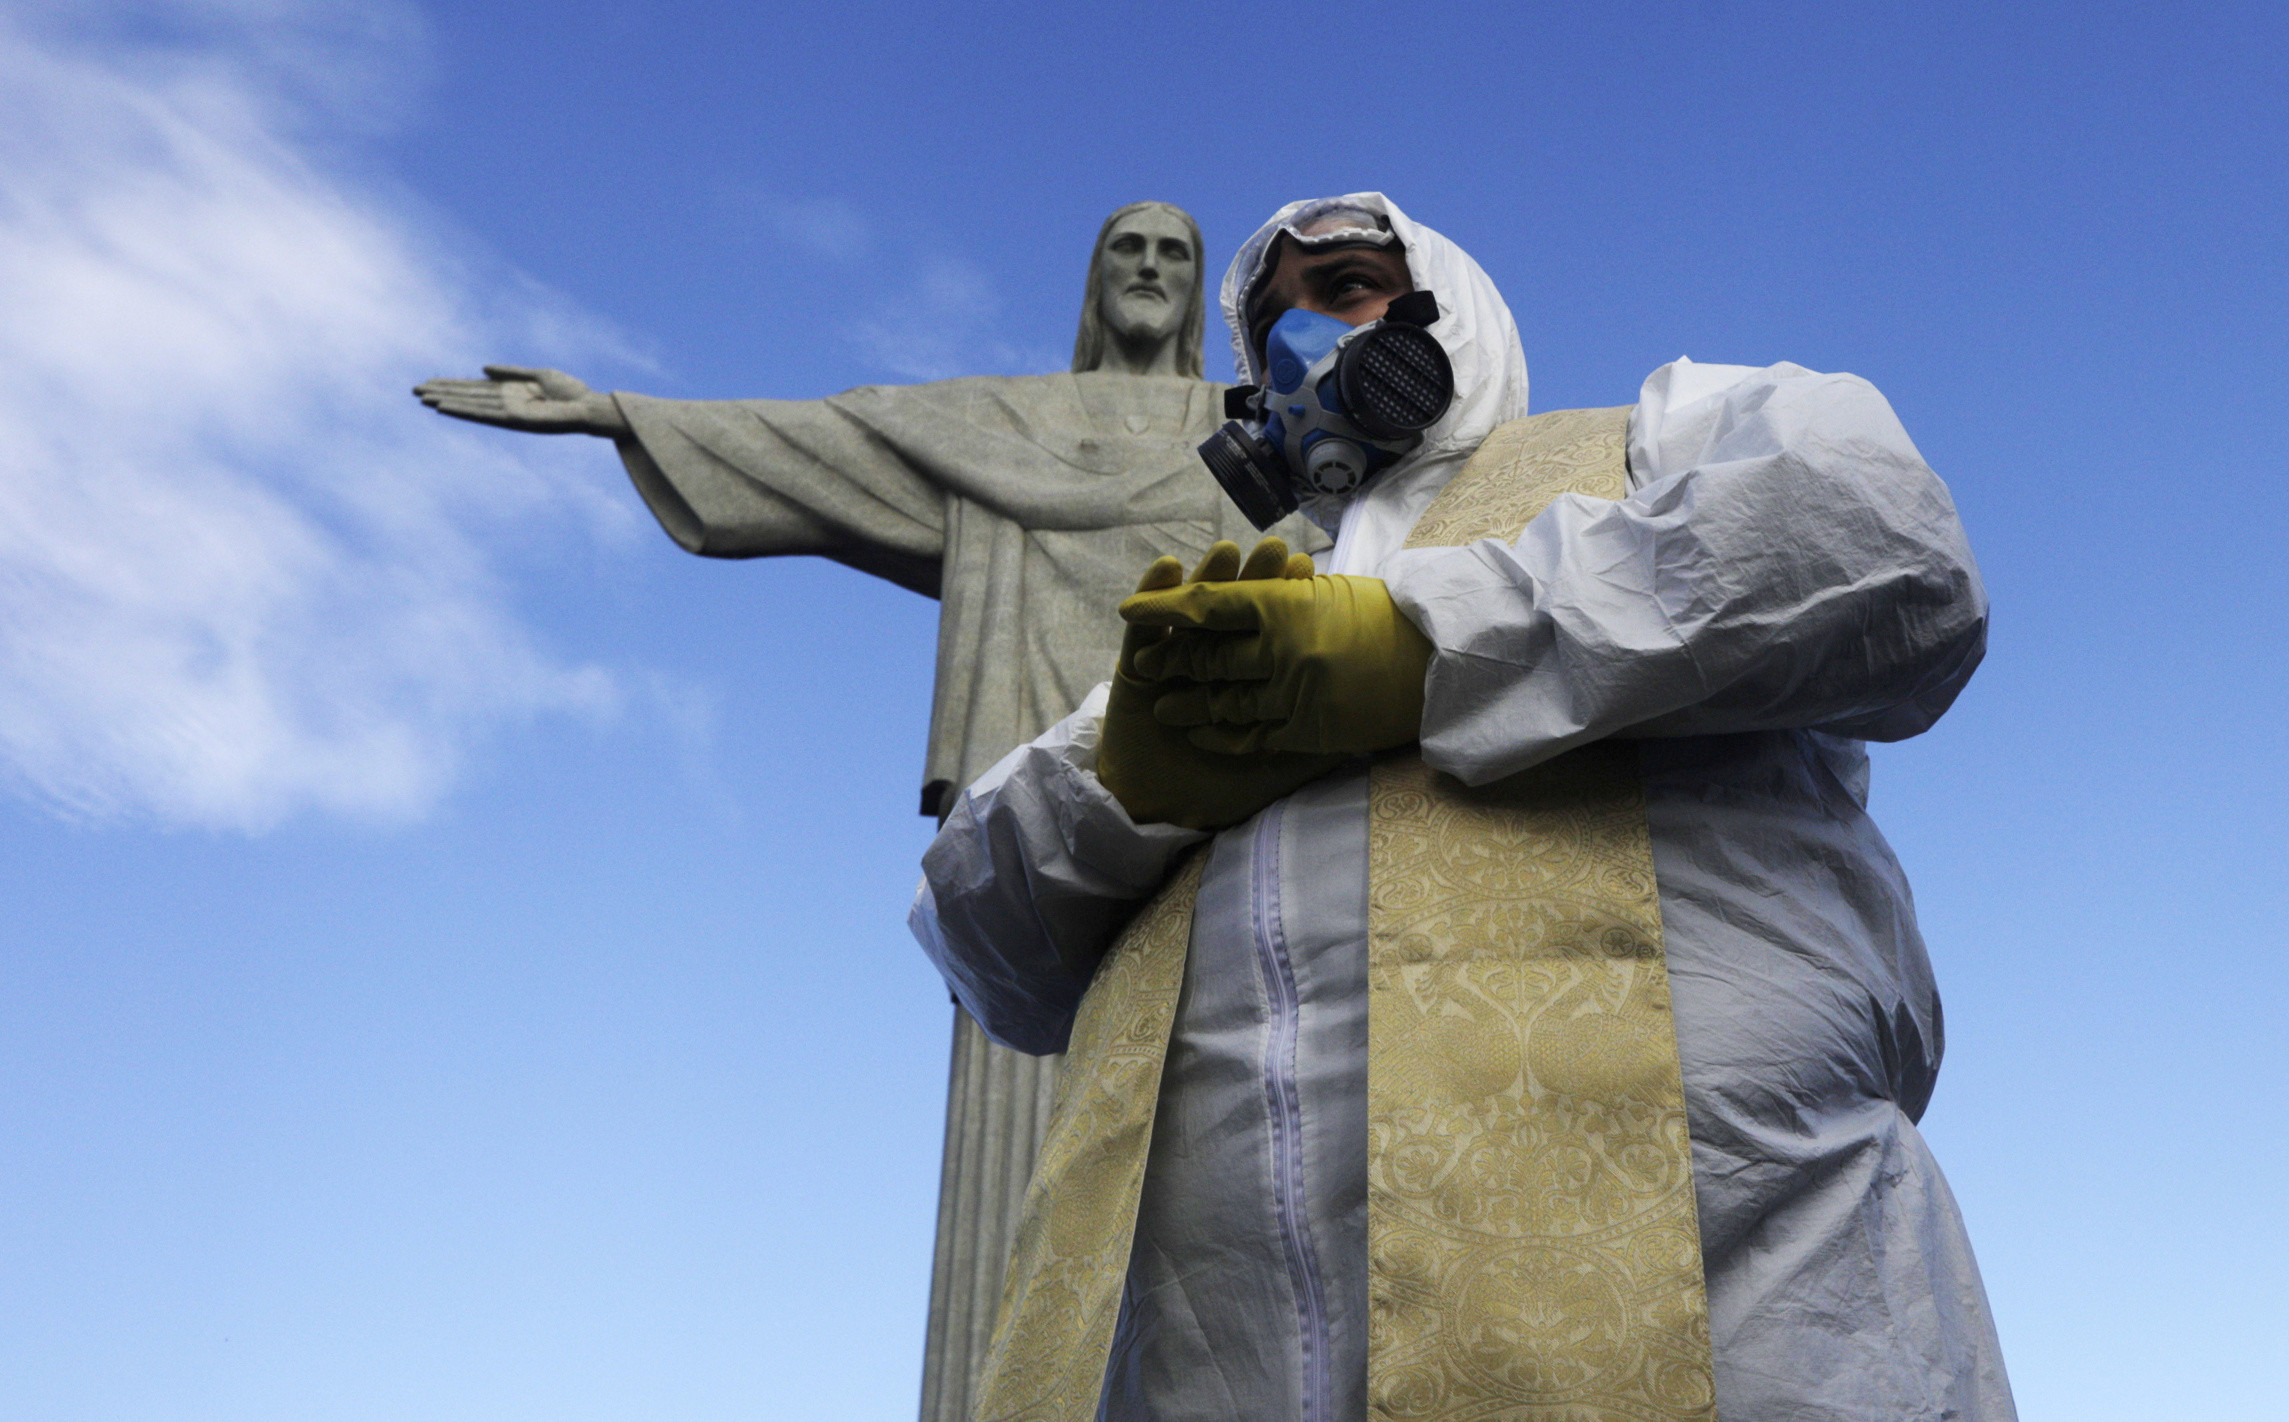 Catholic Priest Omar is pictured as Military members work on disinfection of the Christ the Redeemer statue ahead of its re-opening amid the coronavirus disease (COVID-19) outbreak, in Rio de Janeiro, Brazil, August 13, 2020. REUTERS/Ricardo Moraes     TPX IMAGES OF THE DAY - RC20DI9I3B5C